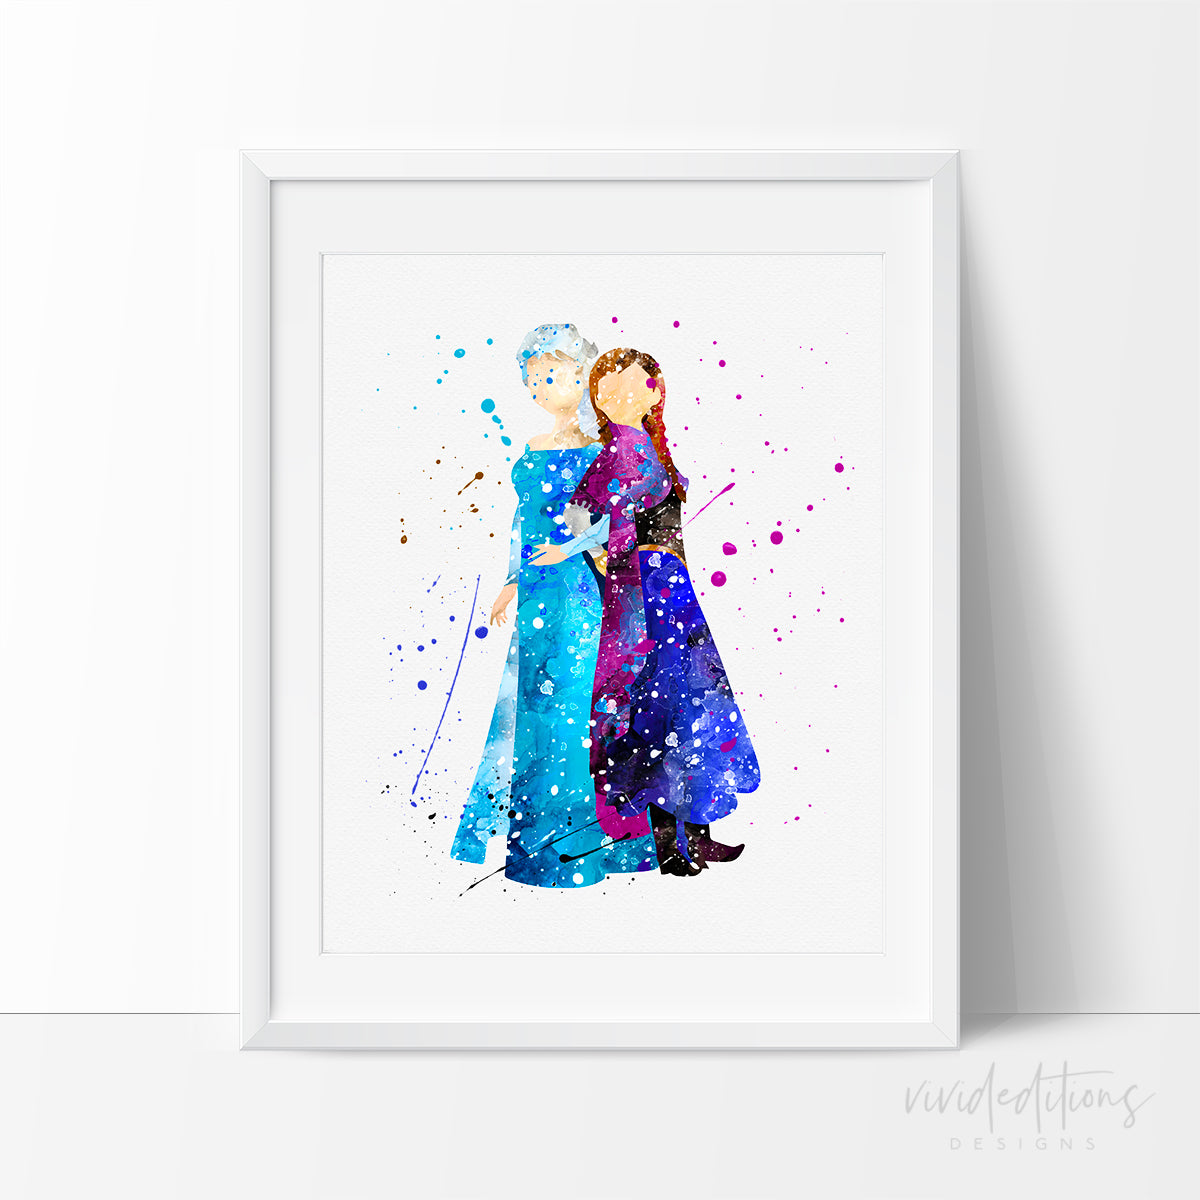 Princess Elsa & Anna 6 Watercolor Art Print Art Print - VIVIDEDITIONS